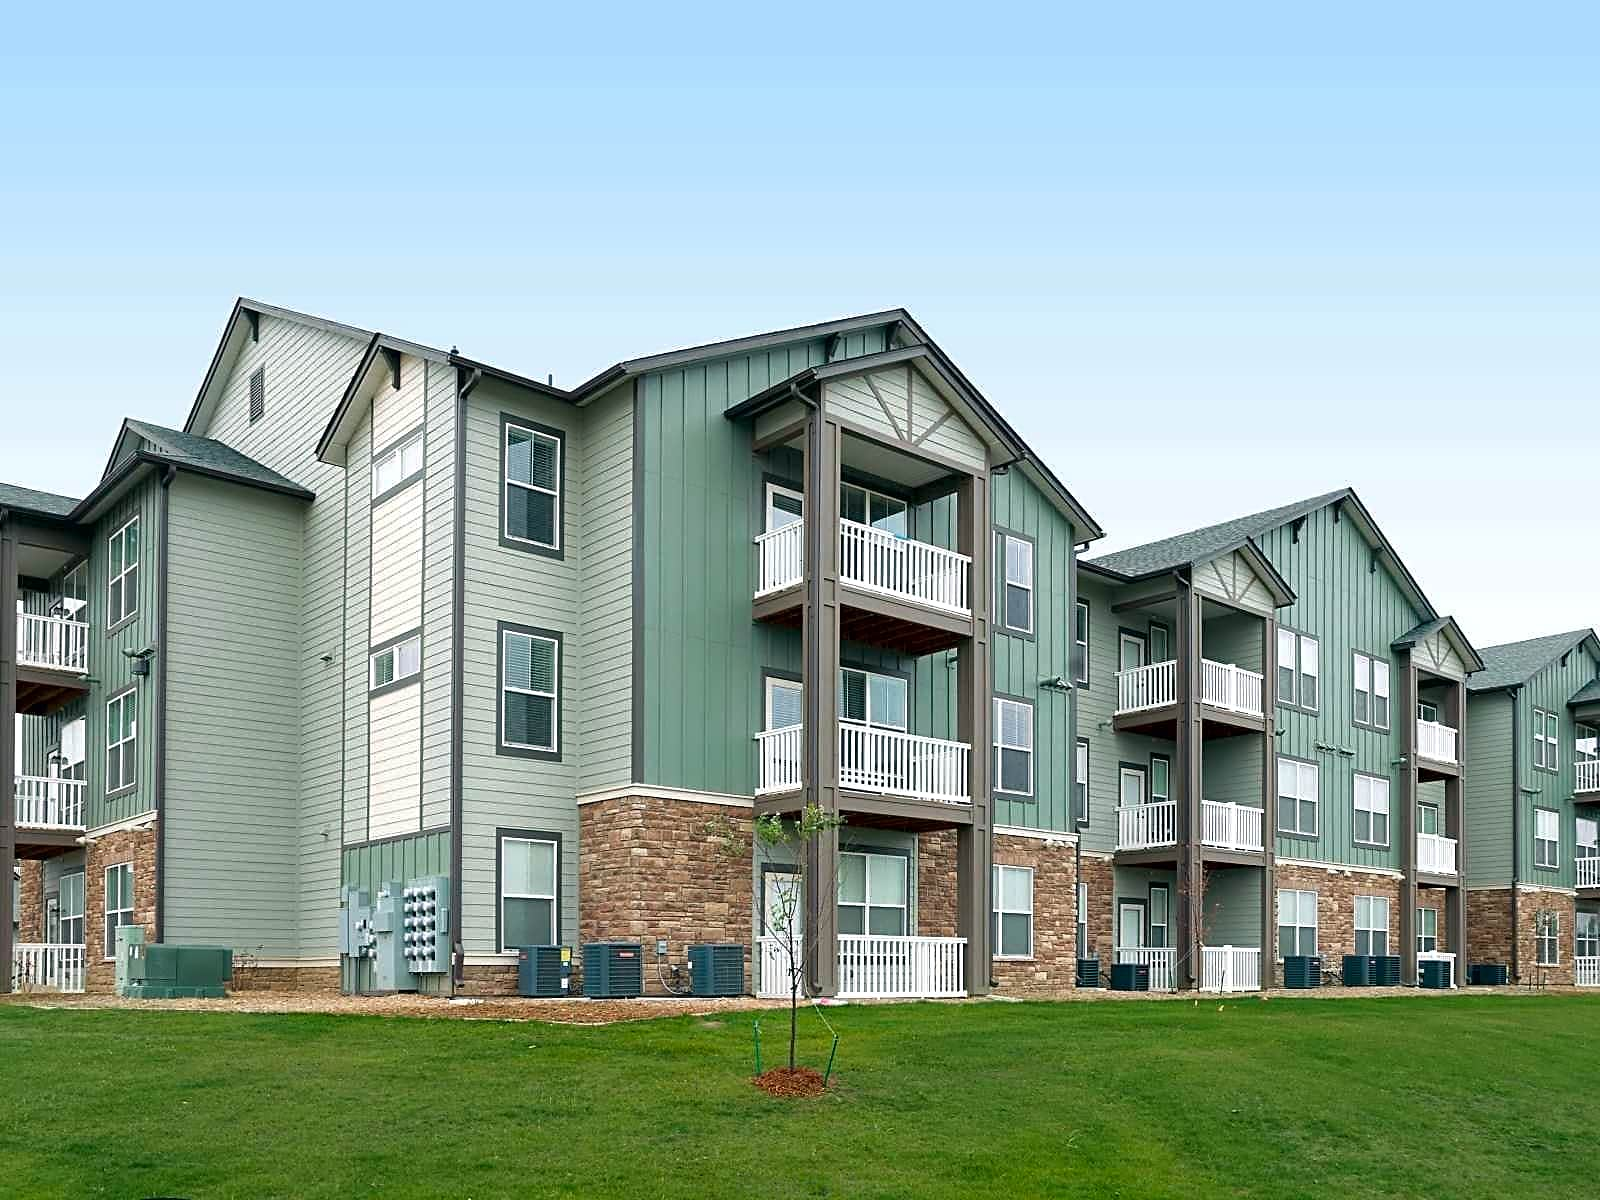 Apartments Near DSU Sierra Ridge Apartments for Dickinson State University Students in Dickinson, ND